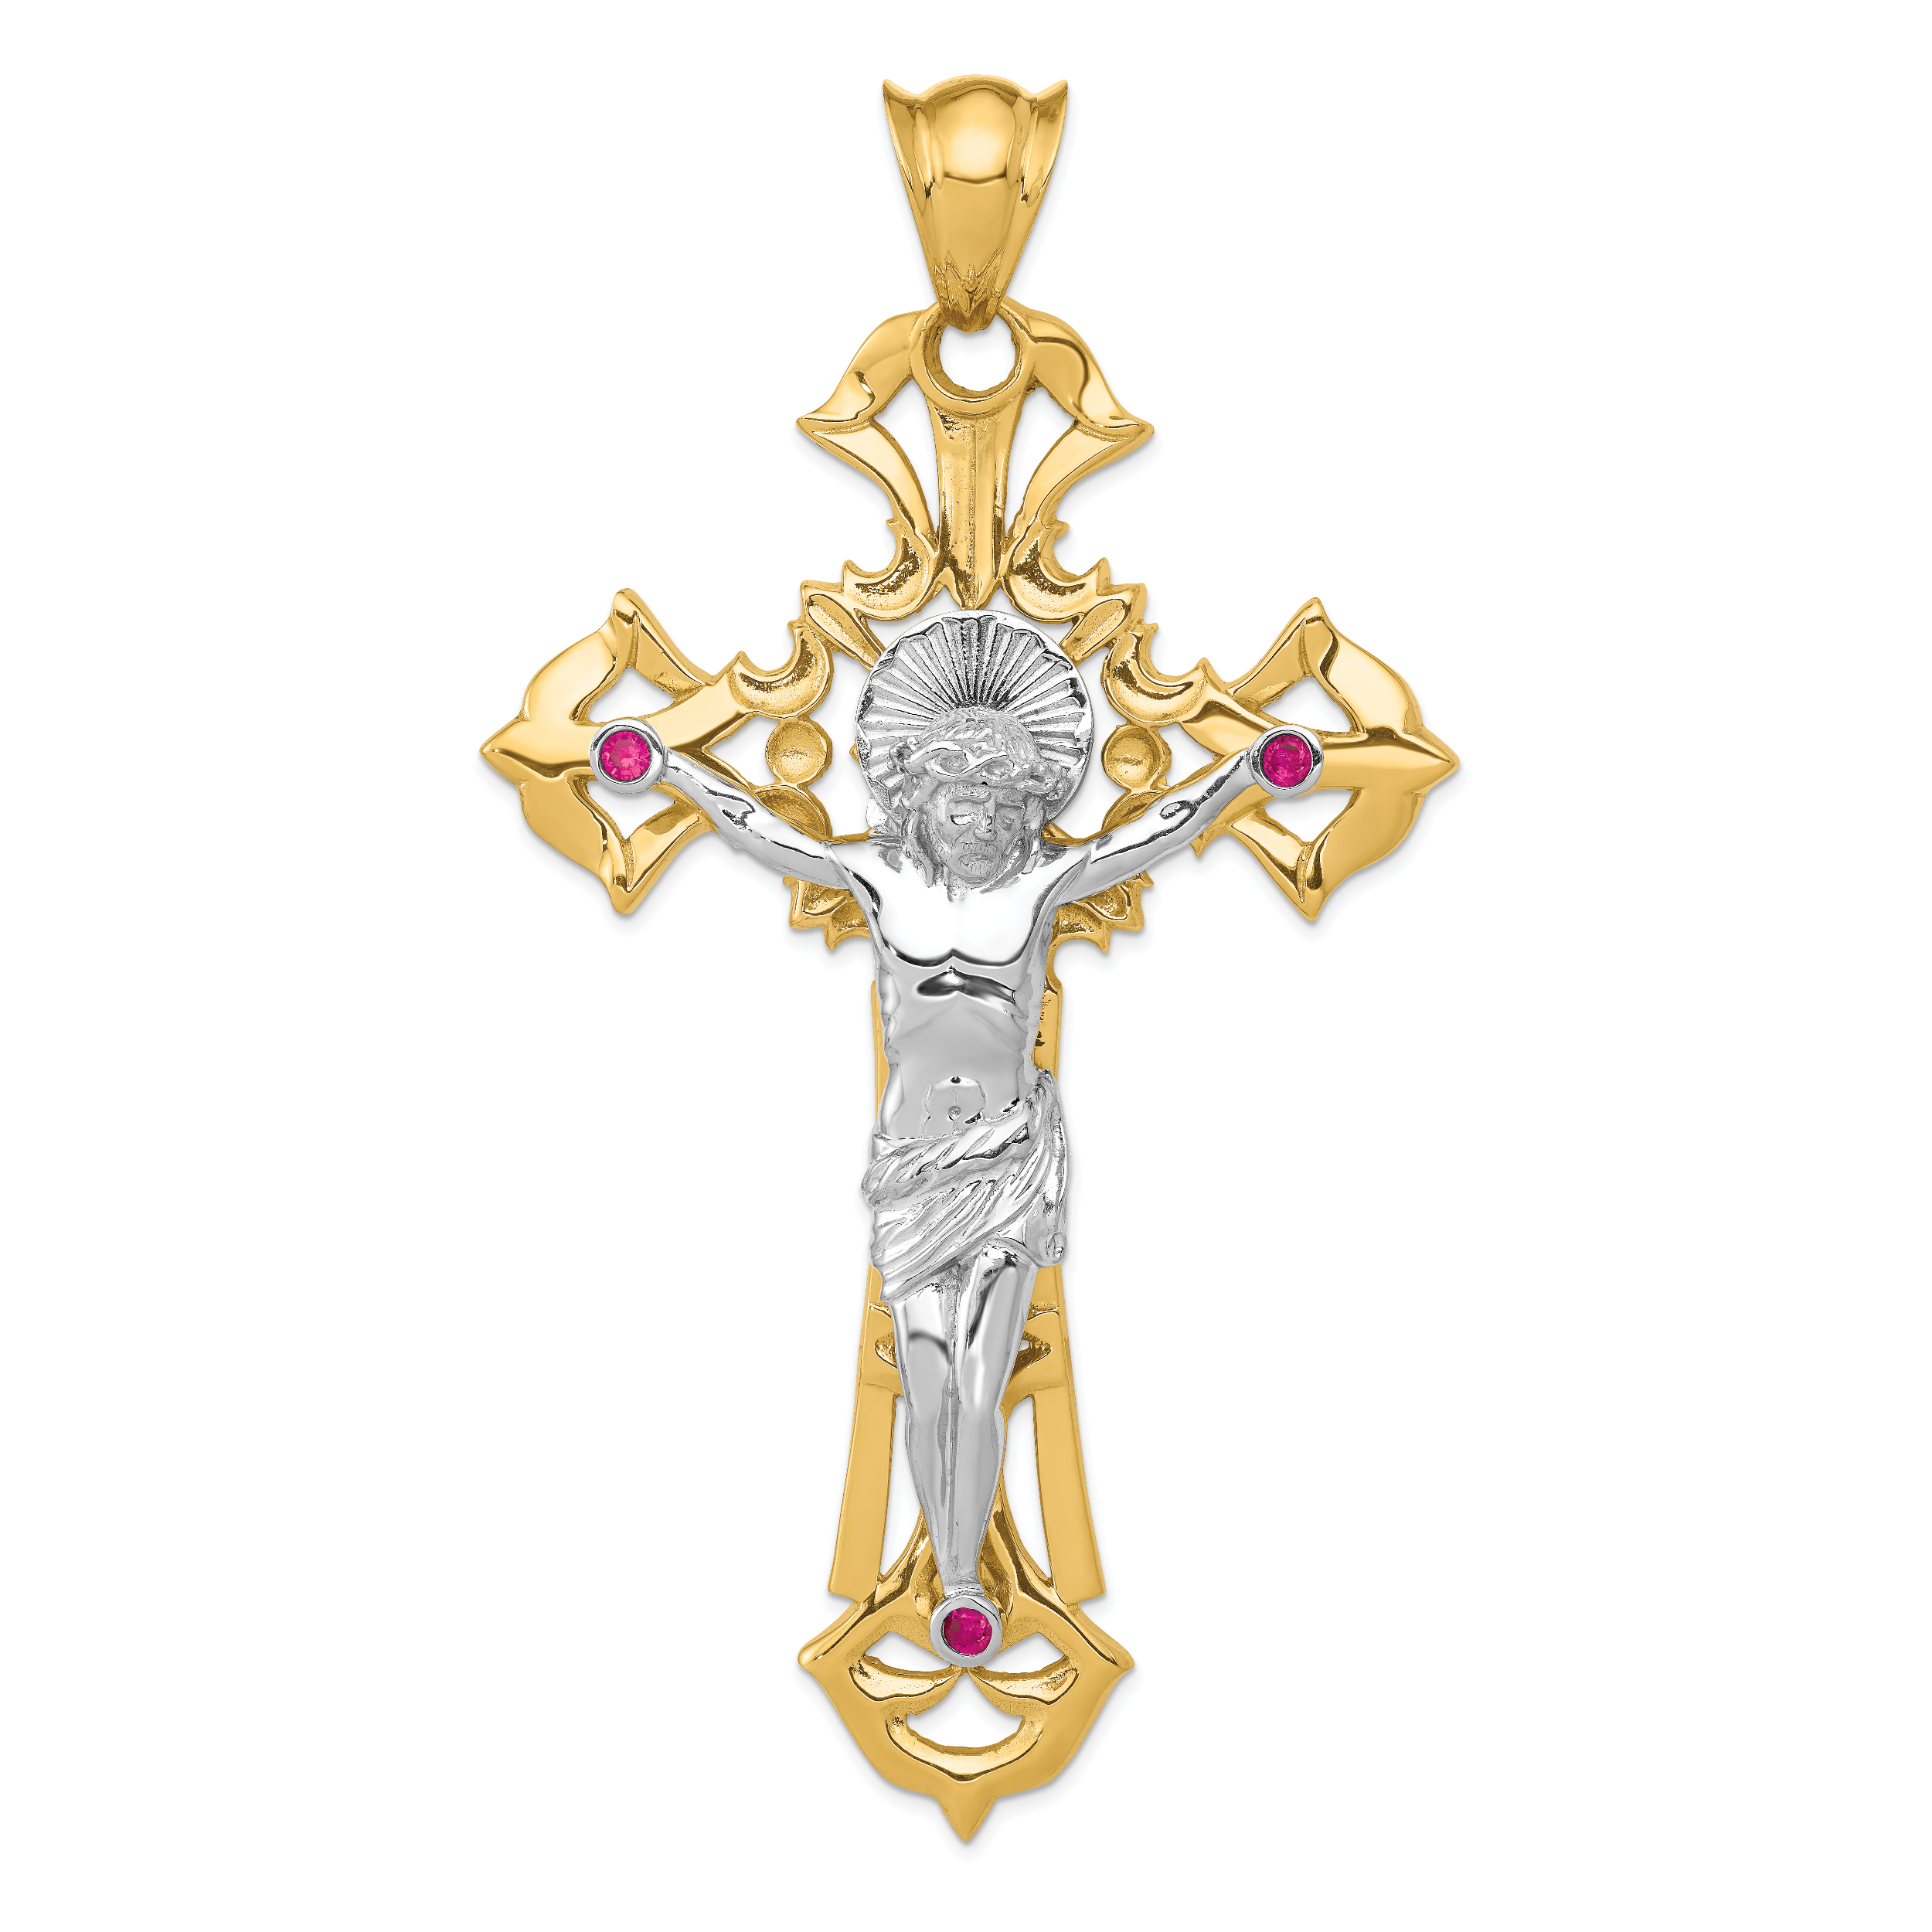 14k Two-tone Polished with Red CZs Crucifix Pendant. Weight: 34.42, Length: 107, Width: 60